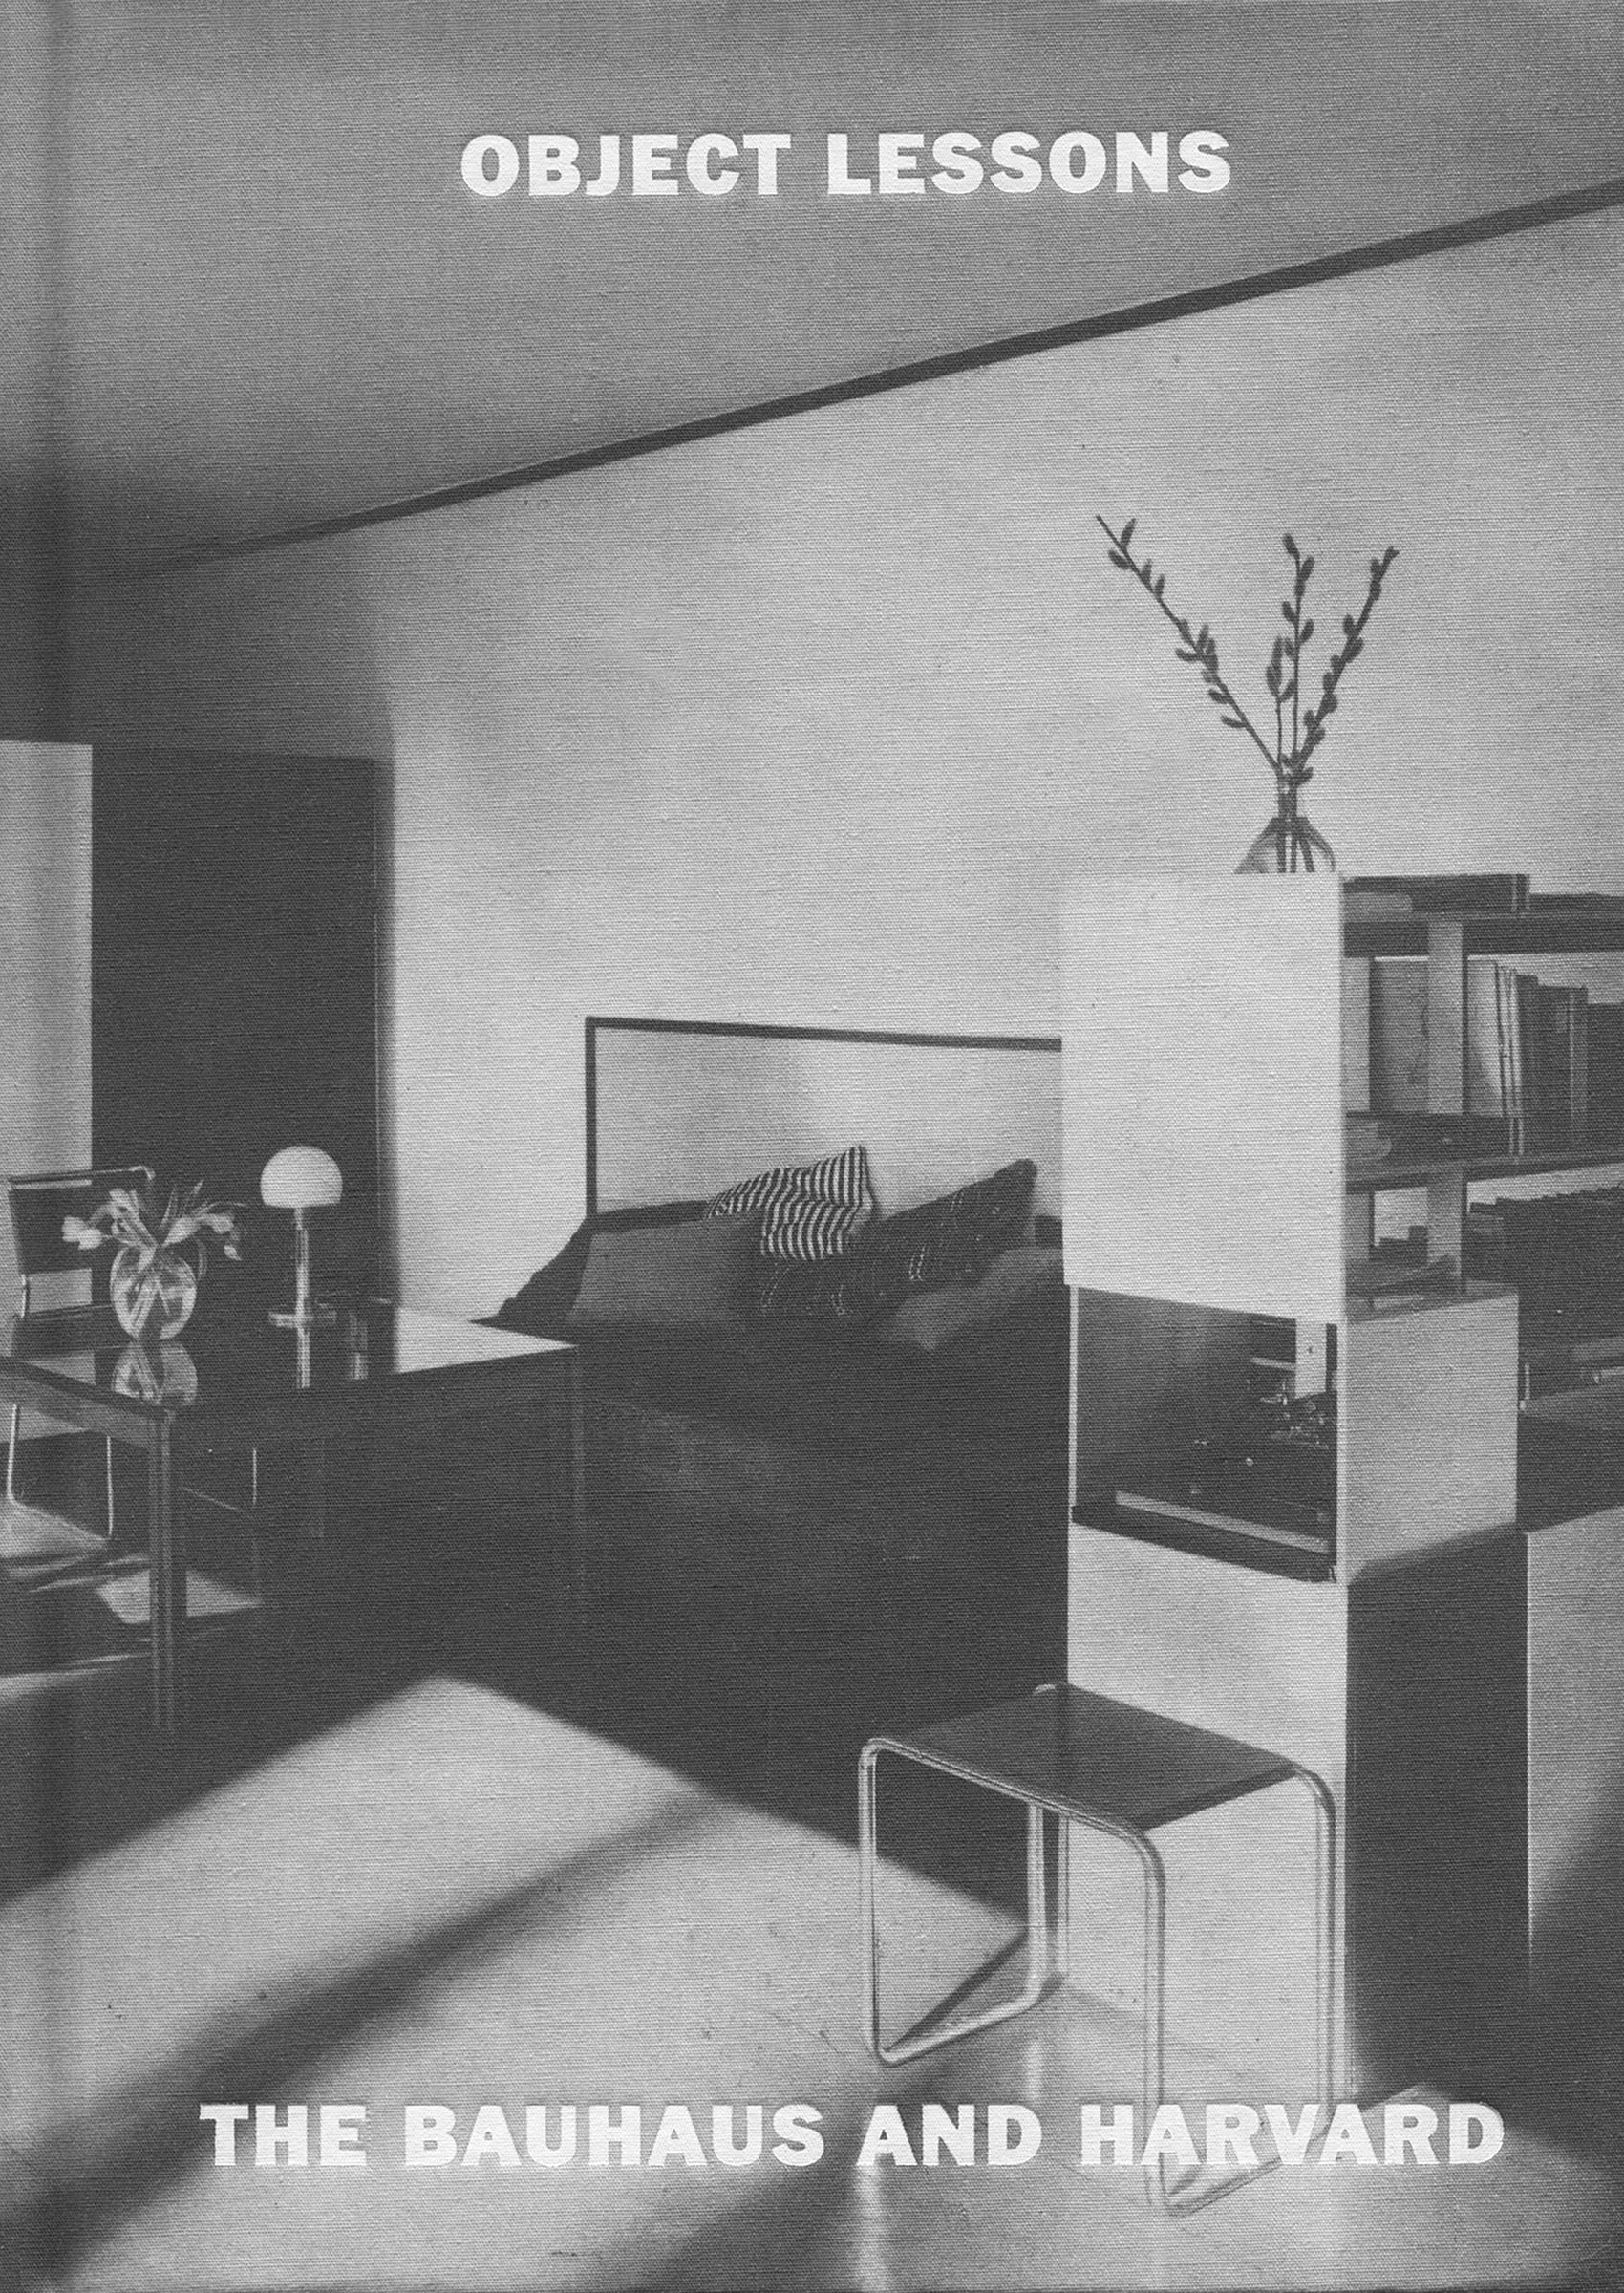 Object Lessons: The Bauhaus and Harvard